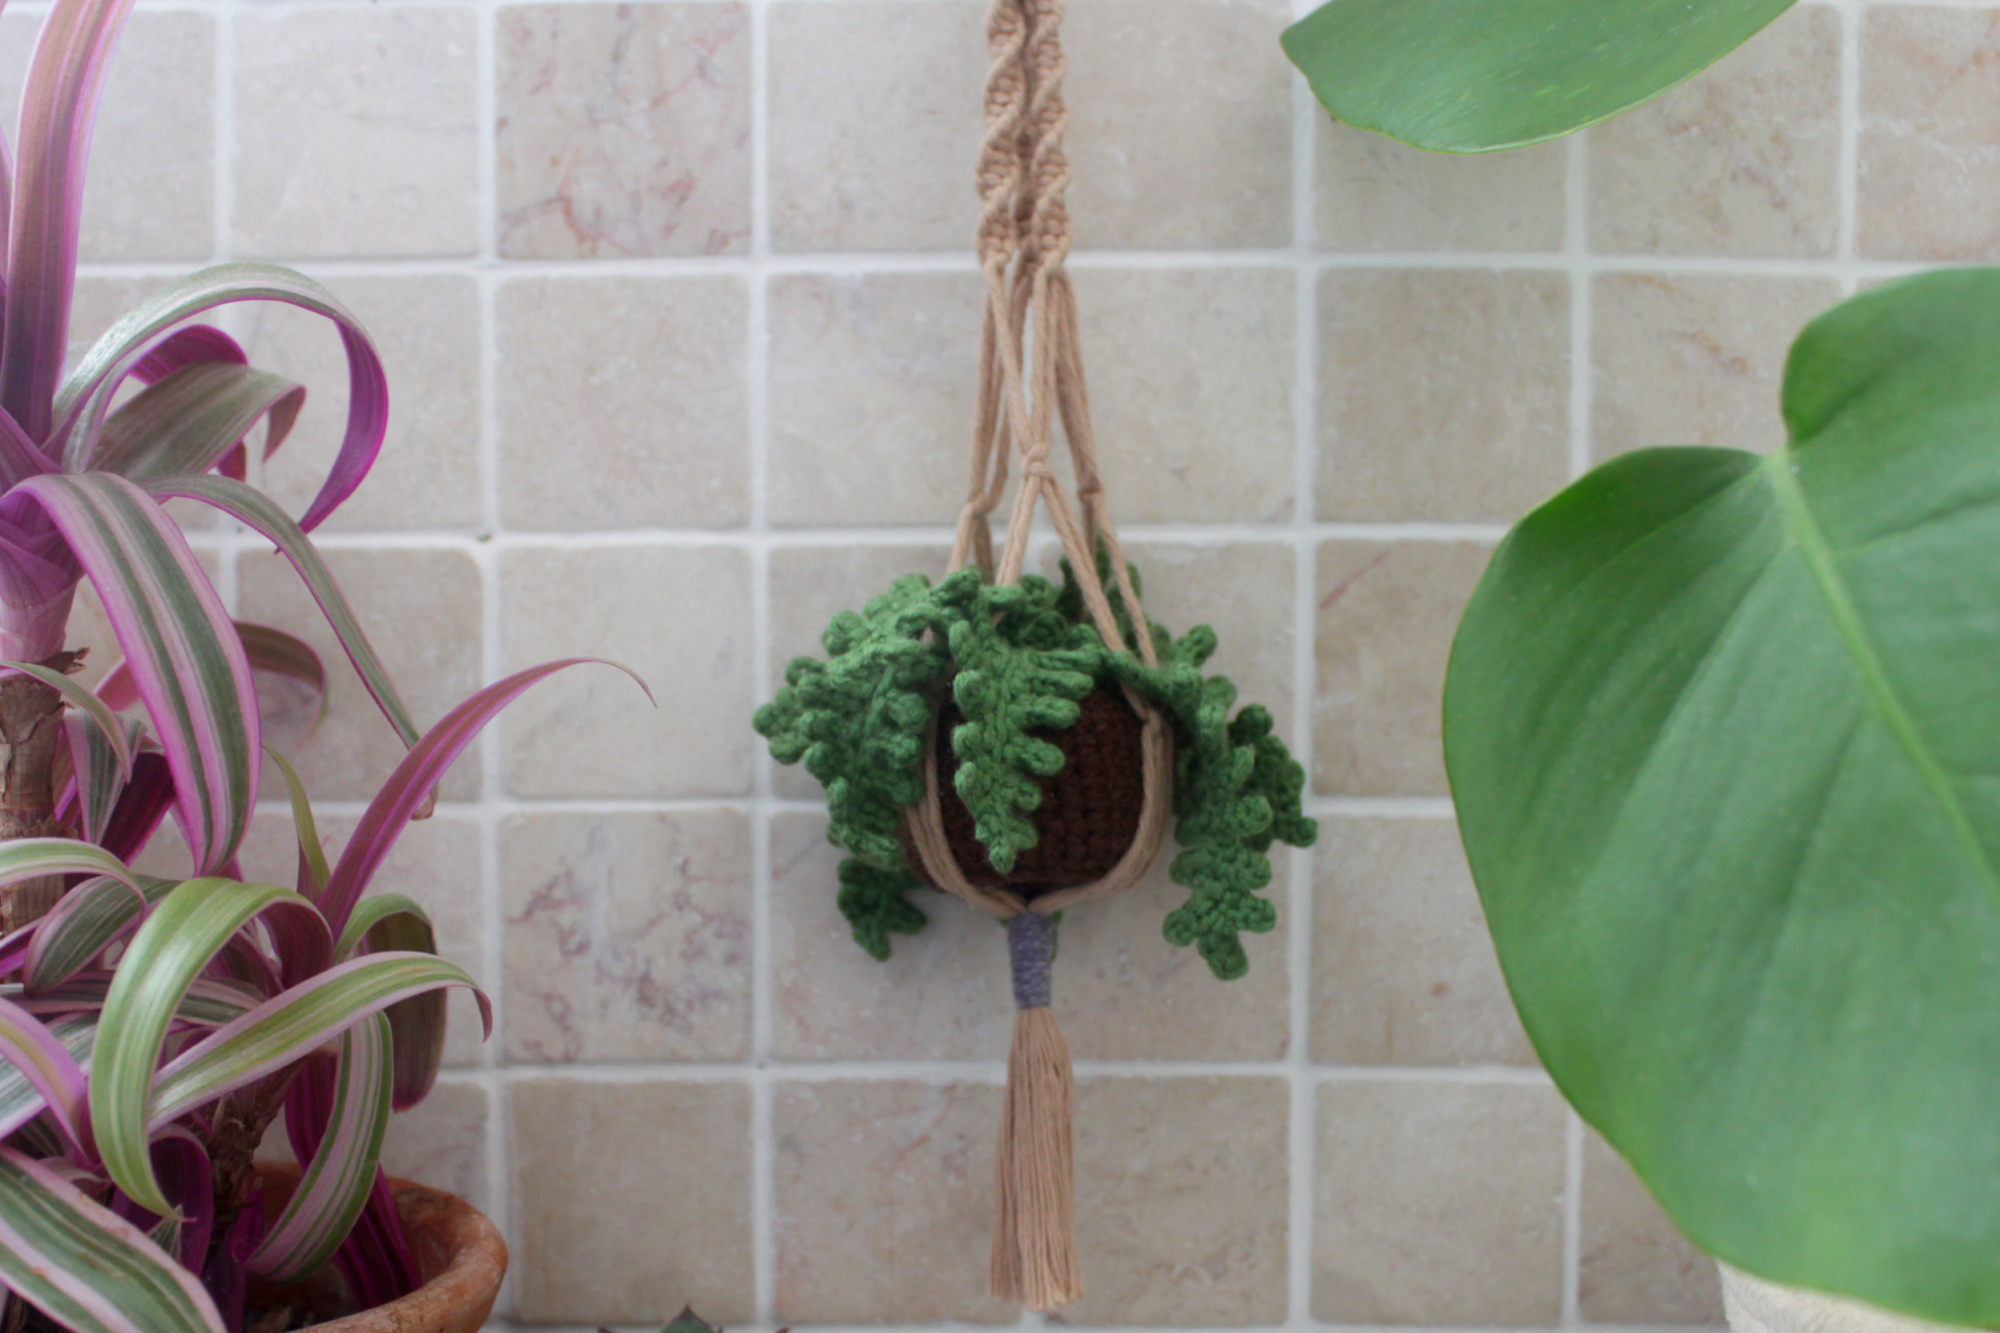 Adorable Mini Crochet Fern in a Macrame Holder